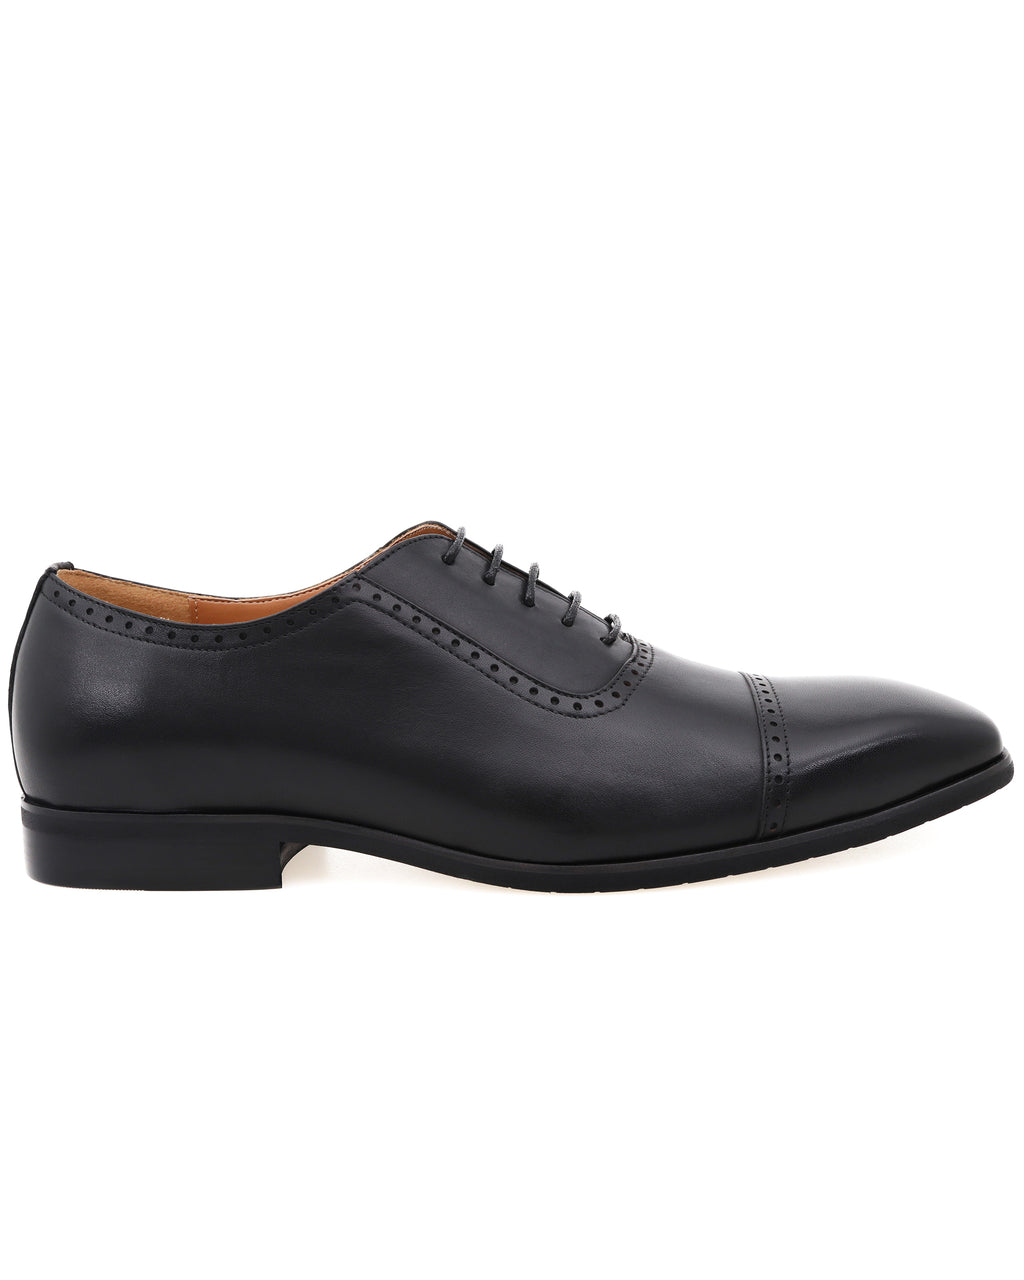 Tomaz F261 Cap Toe Brogue Oxford (Black)